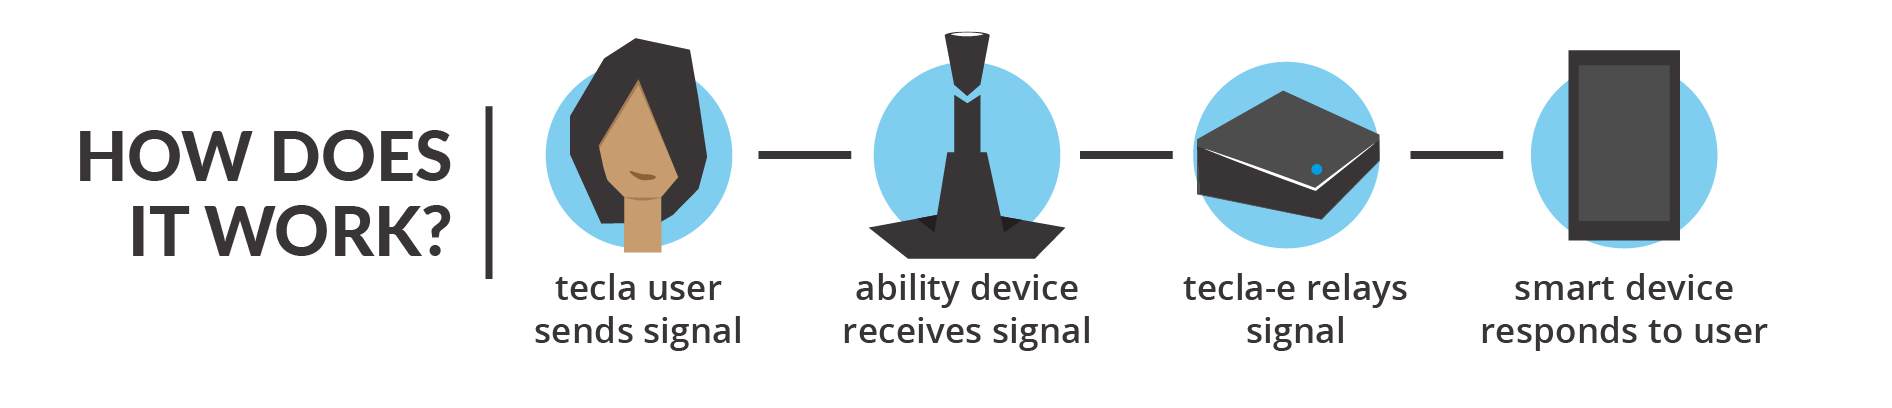 How does tecla work? User sends a signal -> Ability switch relays signal to tecla-e, tecla-e then sends the signal to smart technology (smart phones, tablets, etc)